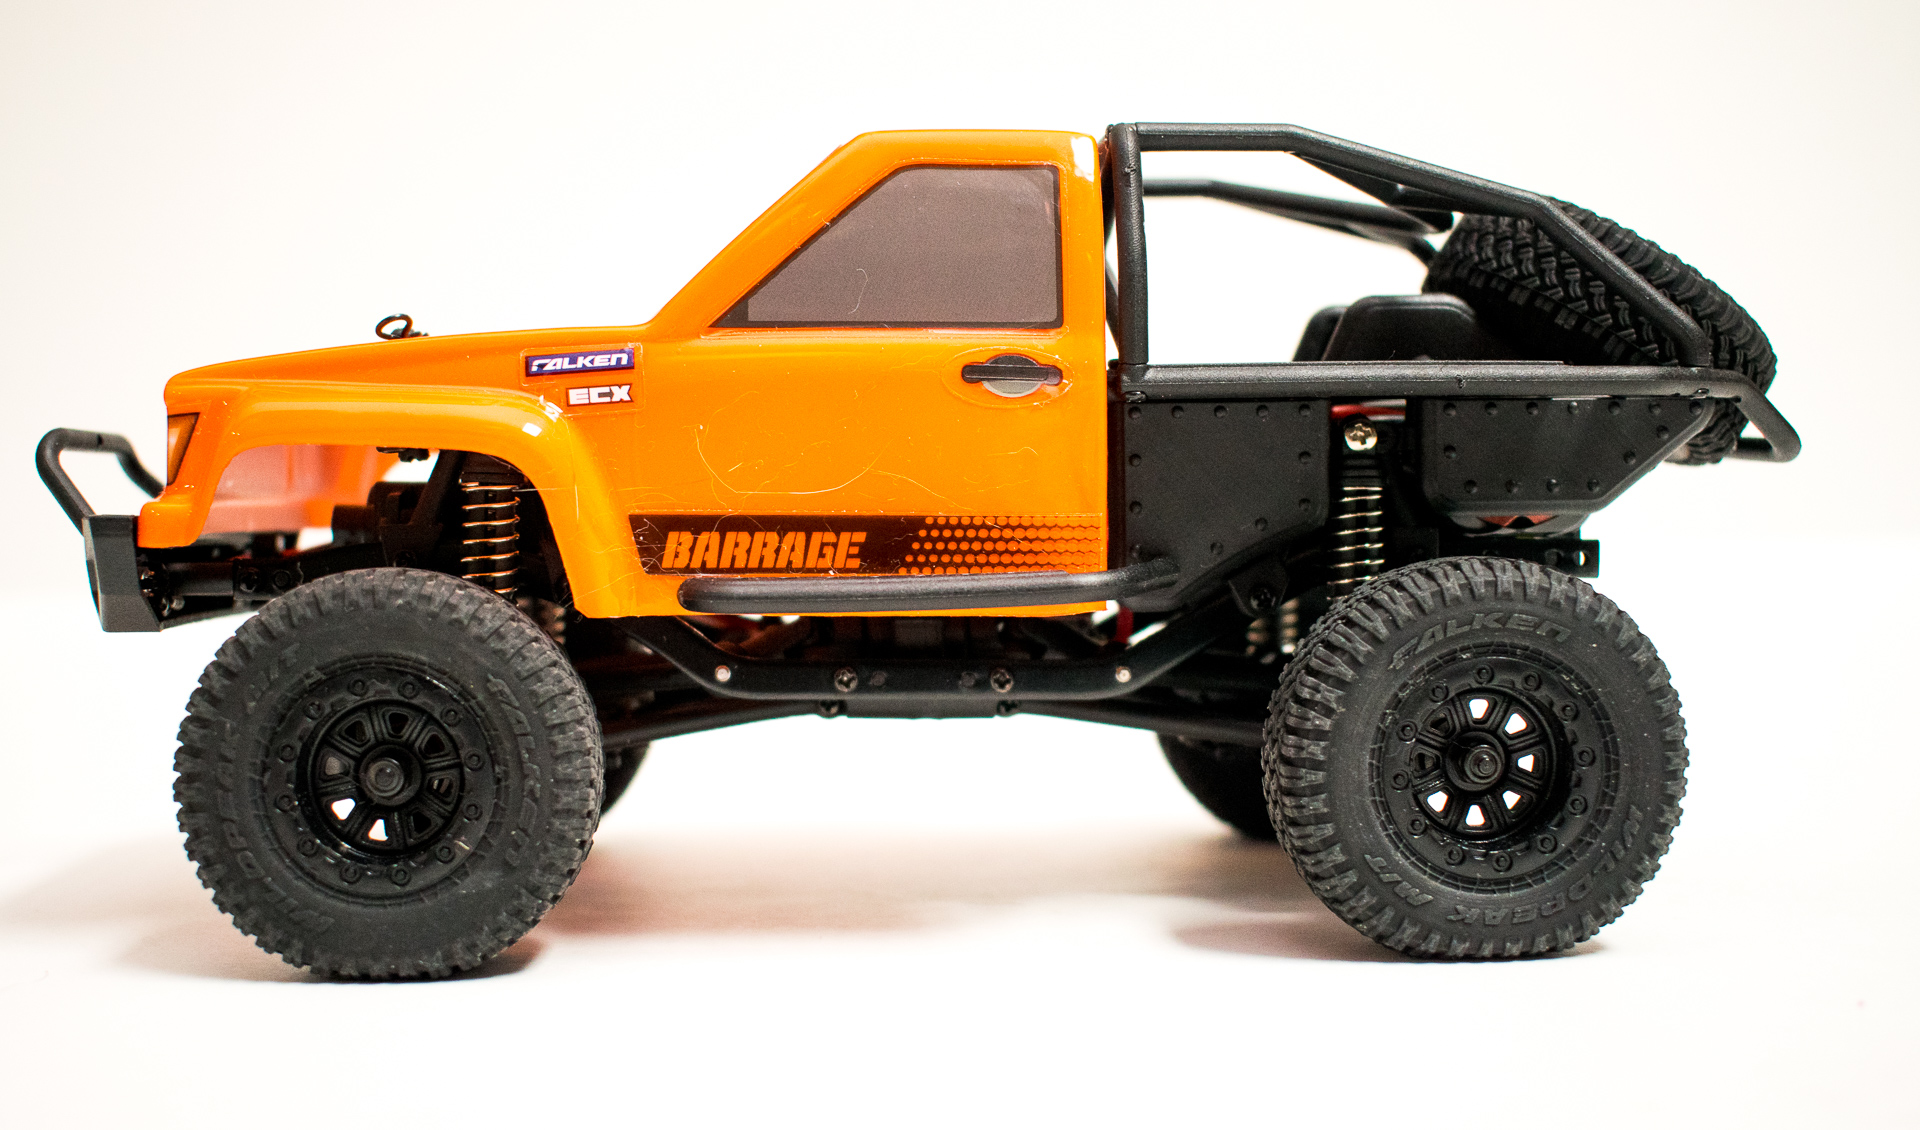 ECX Barrage 124 Side